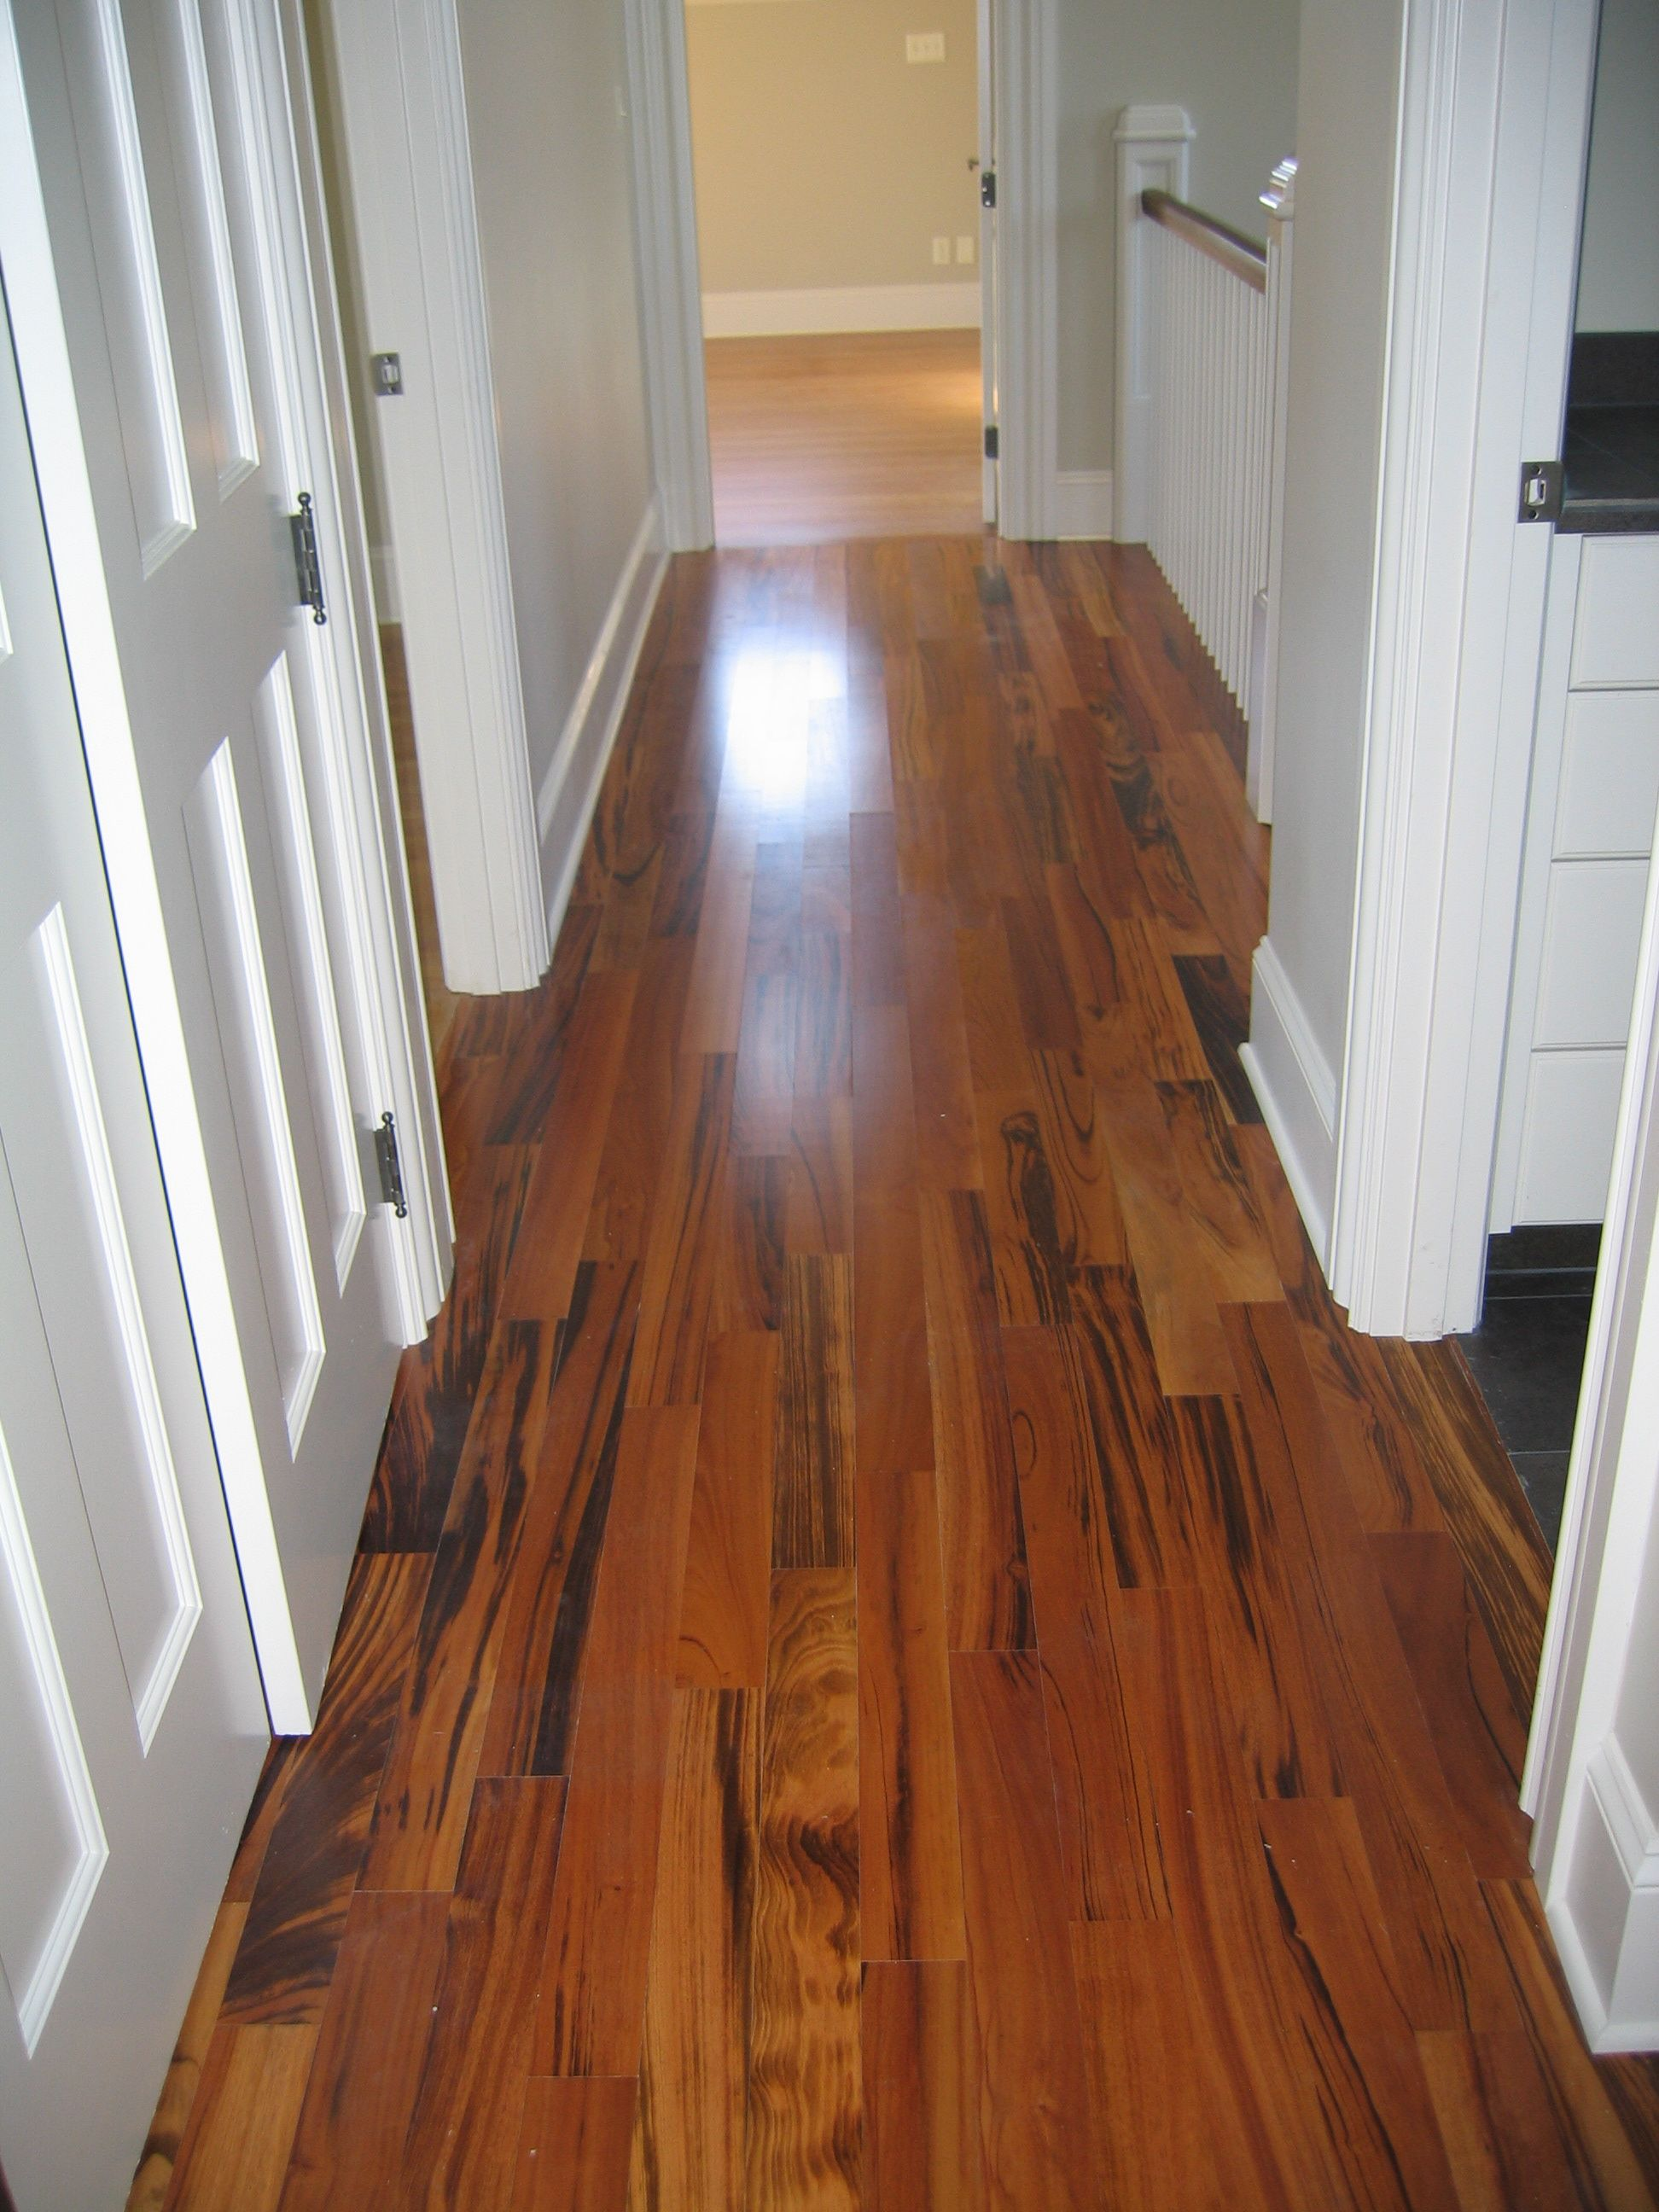 Natural Light Shining On Newly Installed Tigerwood Flooring Tigerwood Flooring Flooring Home Additions